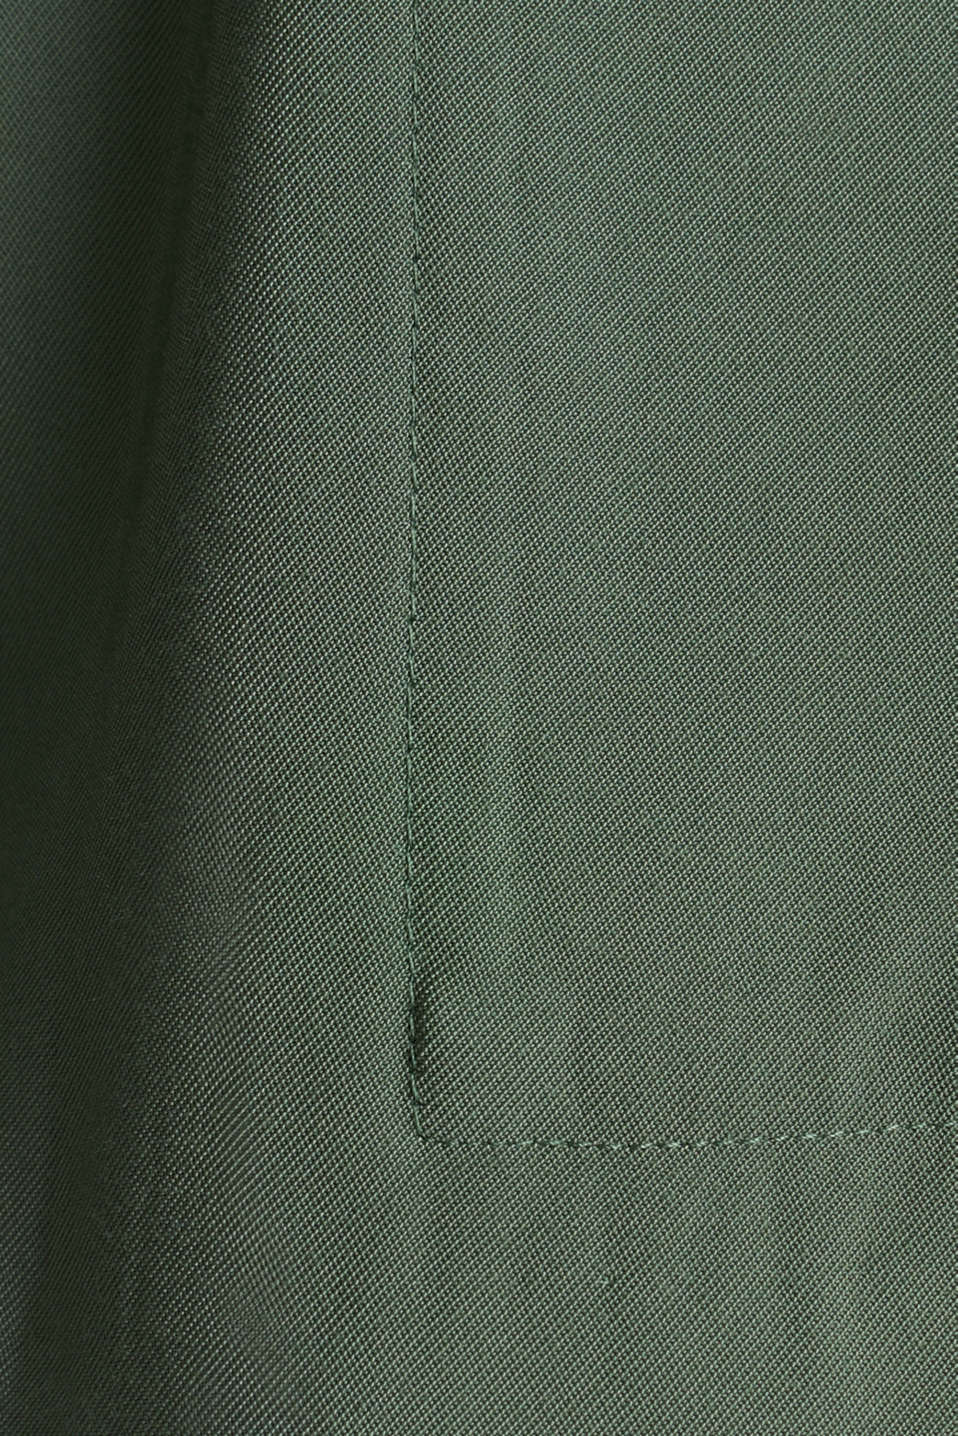 Utility-style shirt jacket, KHAKI GREEN, detail image number 4